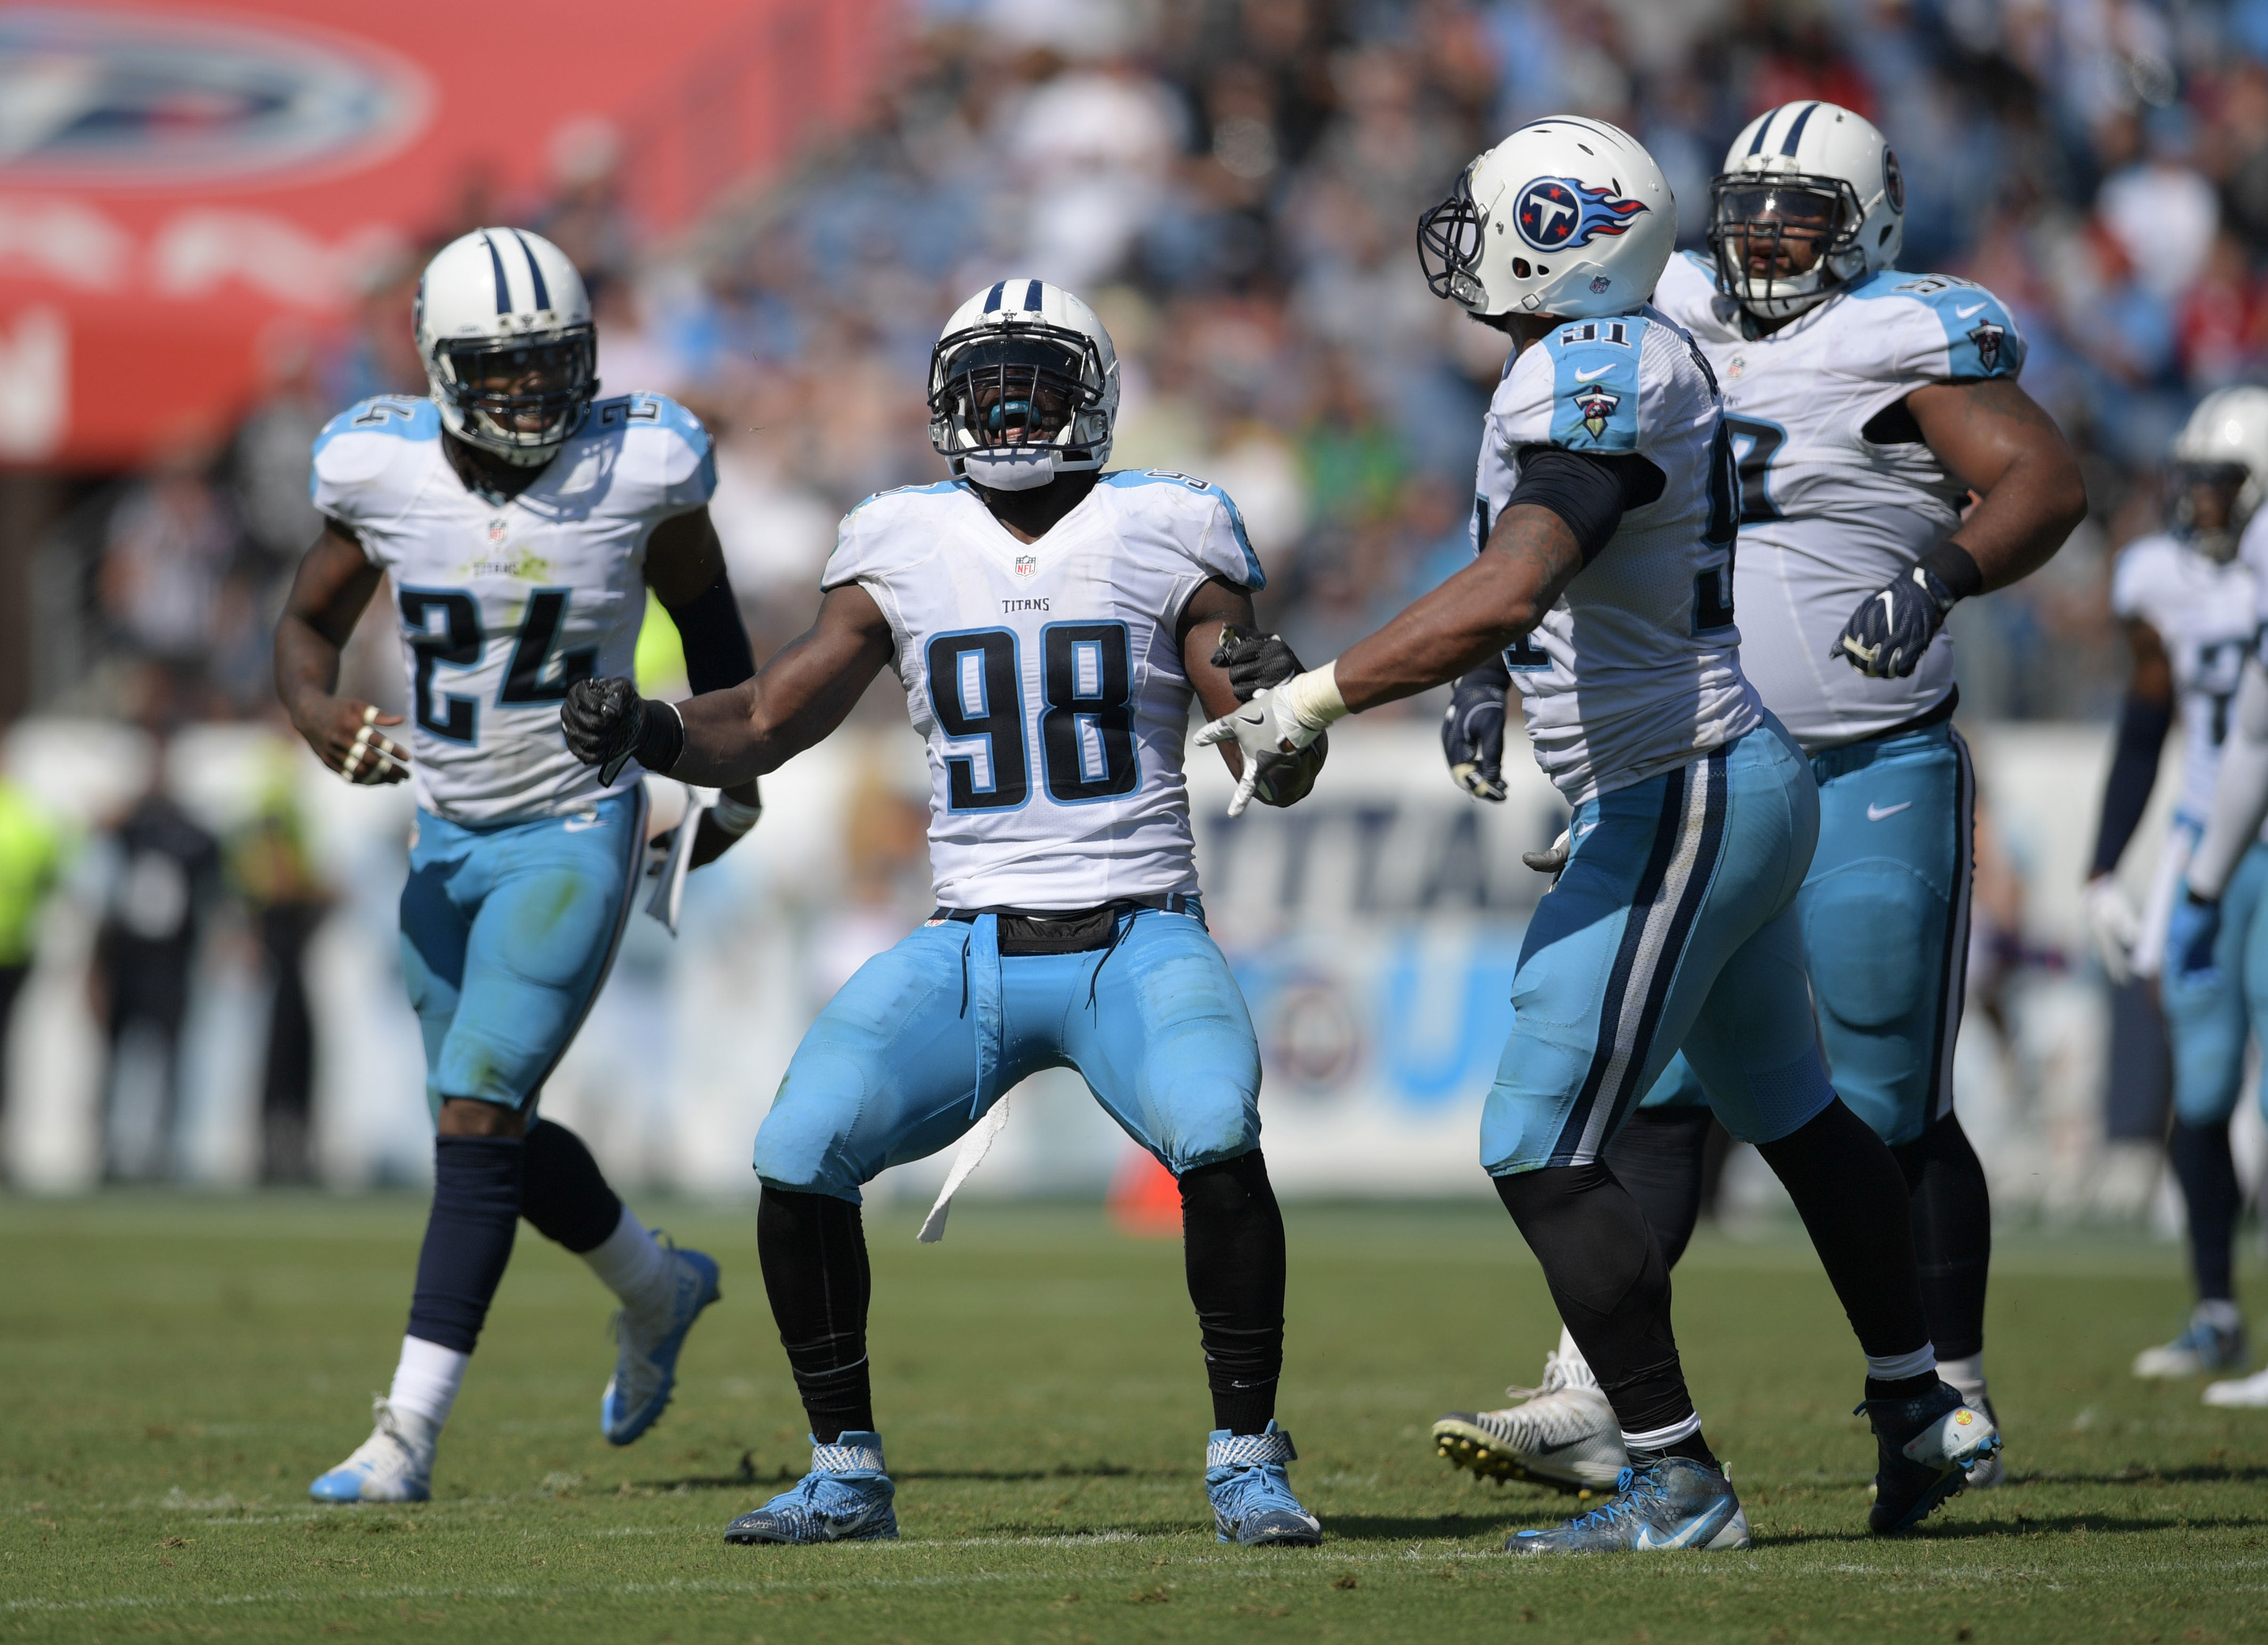 9645790-nfl-oakland-raiders-at-tennessee-titans